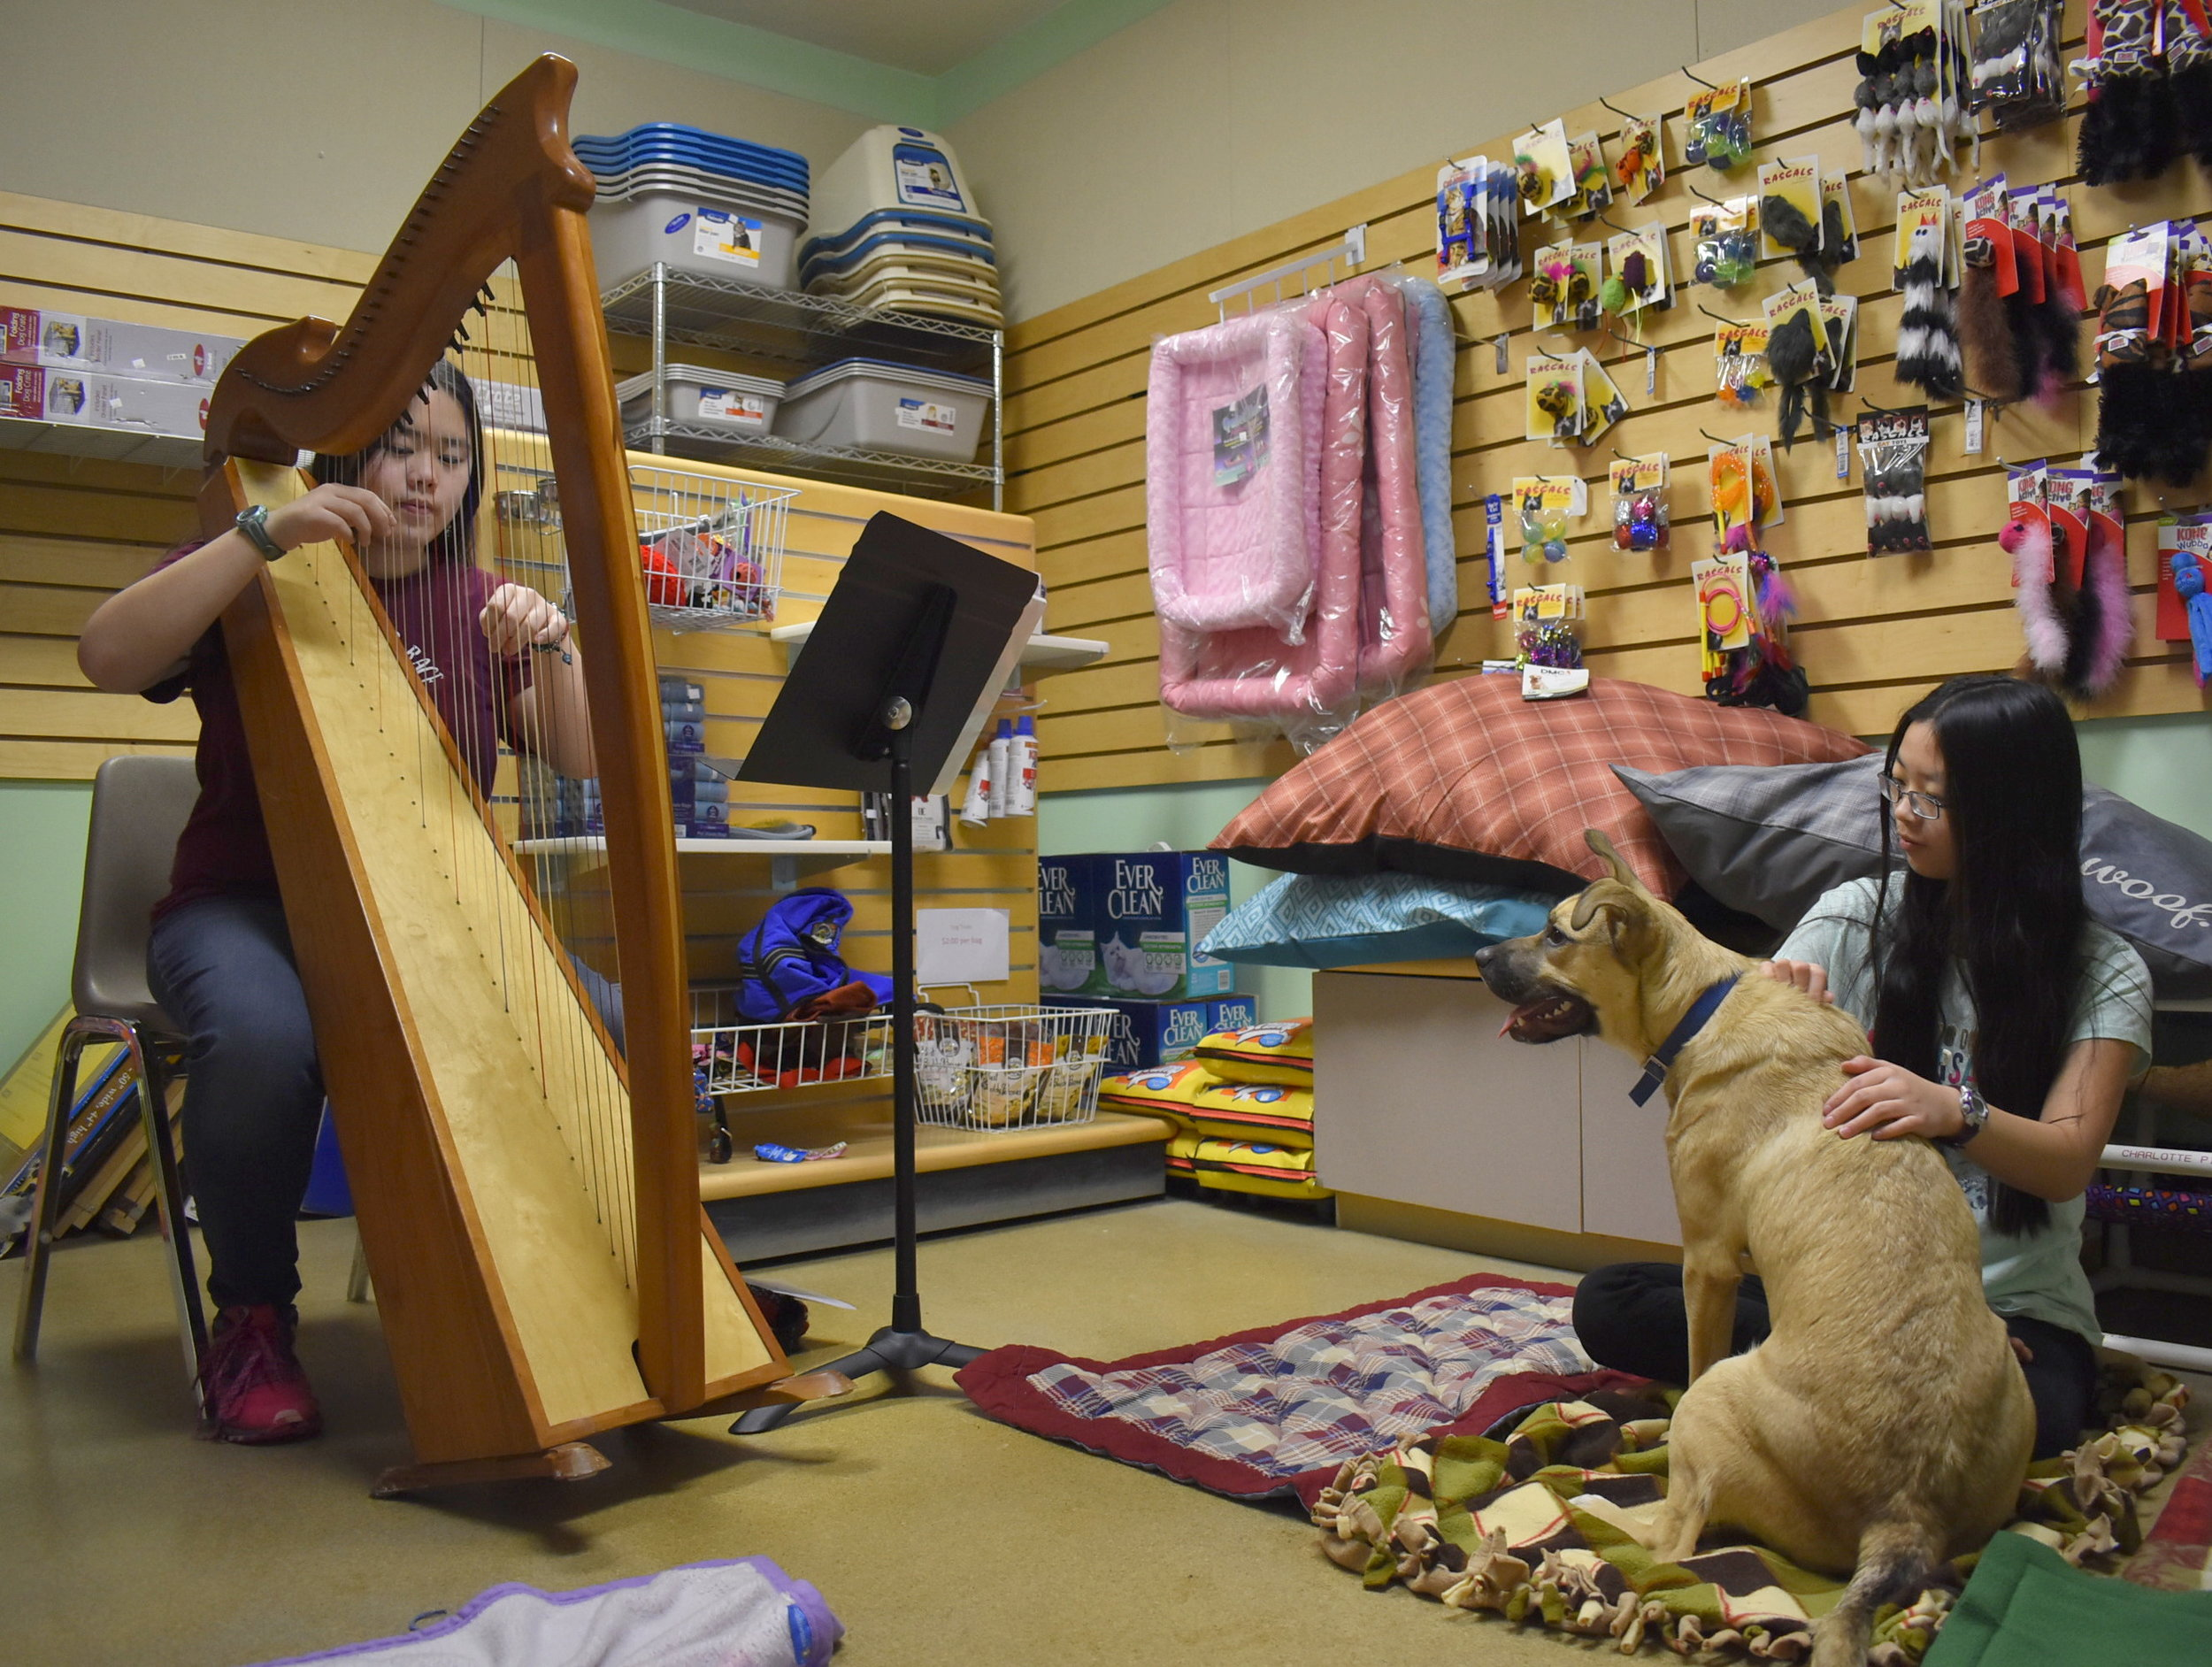 Prescott, an 8-month old puppy, intrigued with the harp and Sophia's music.